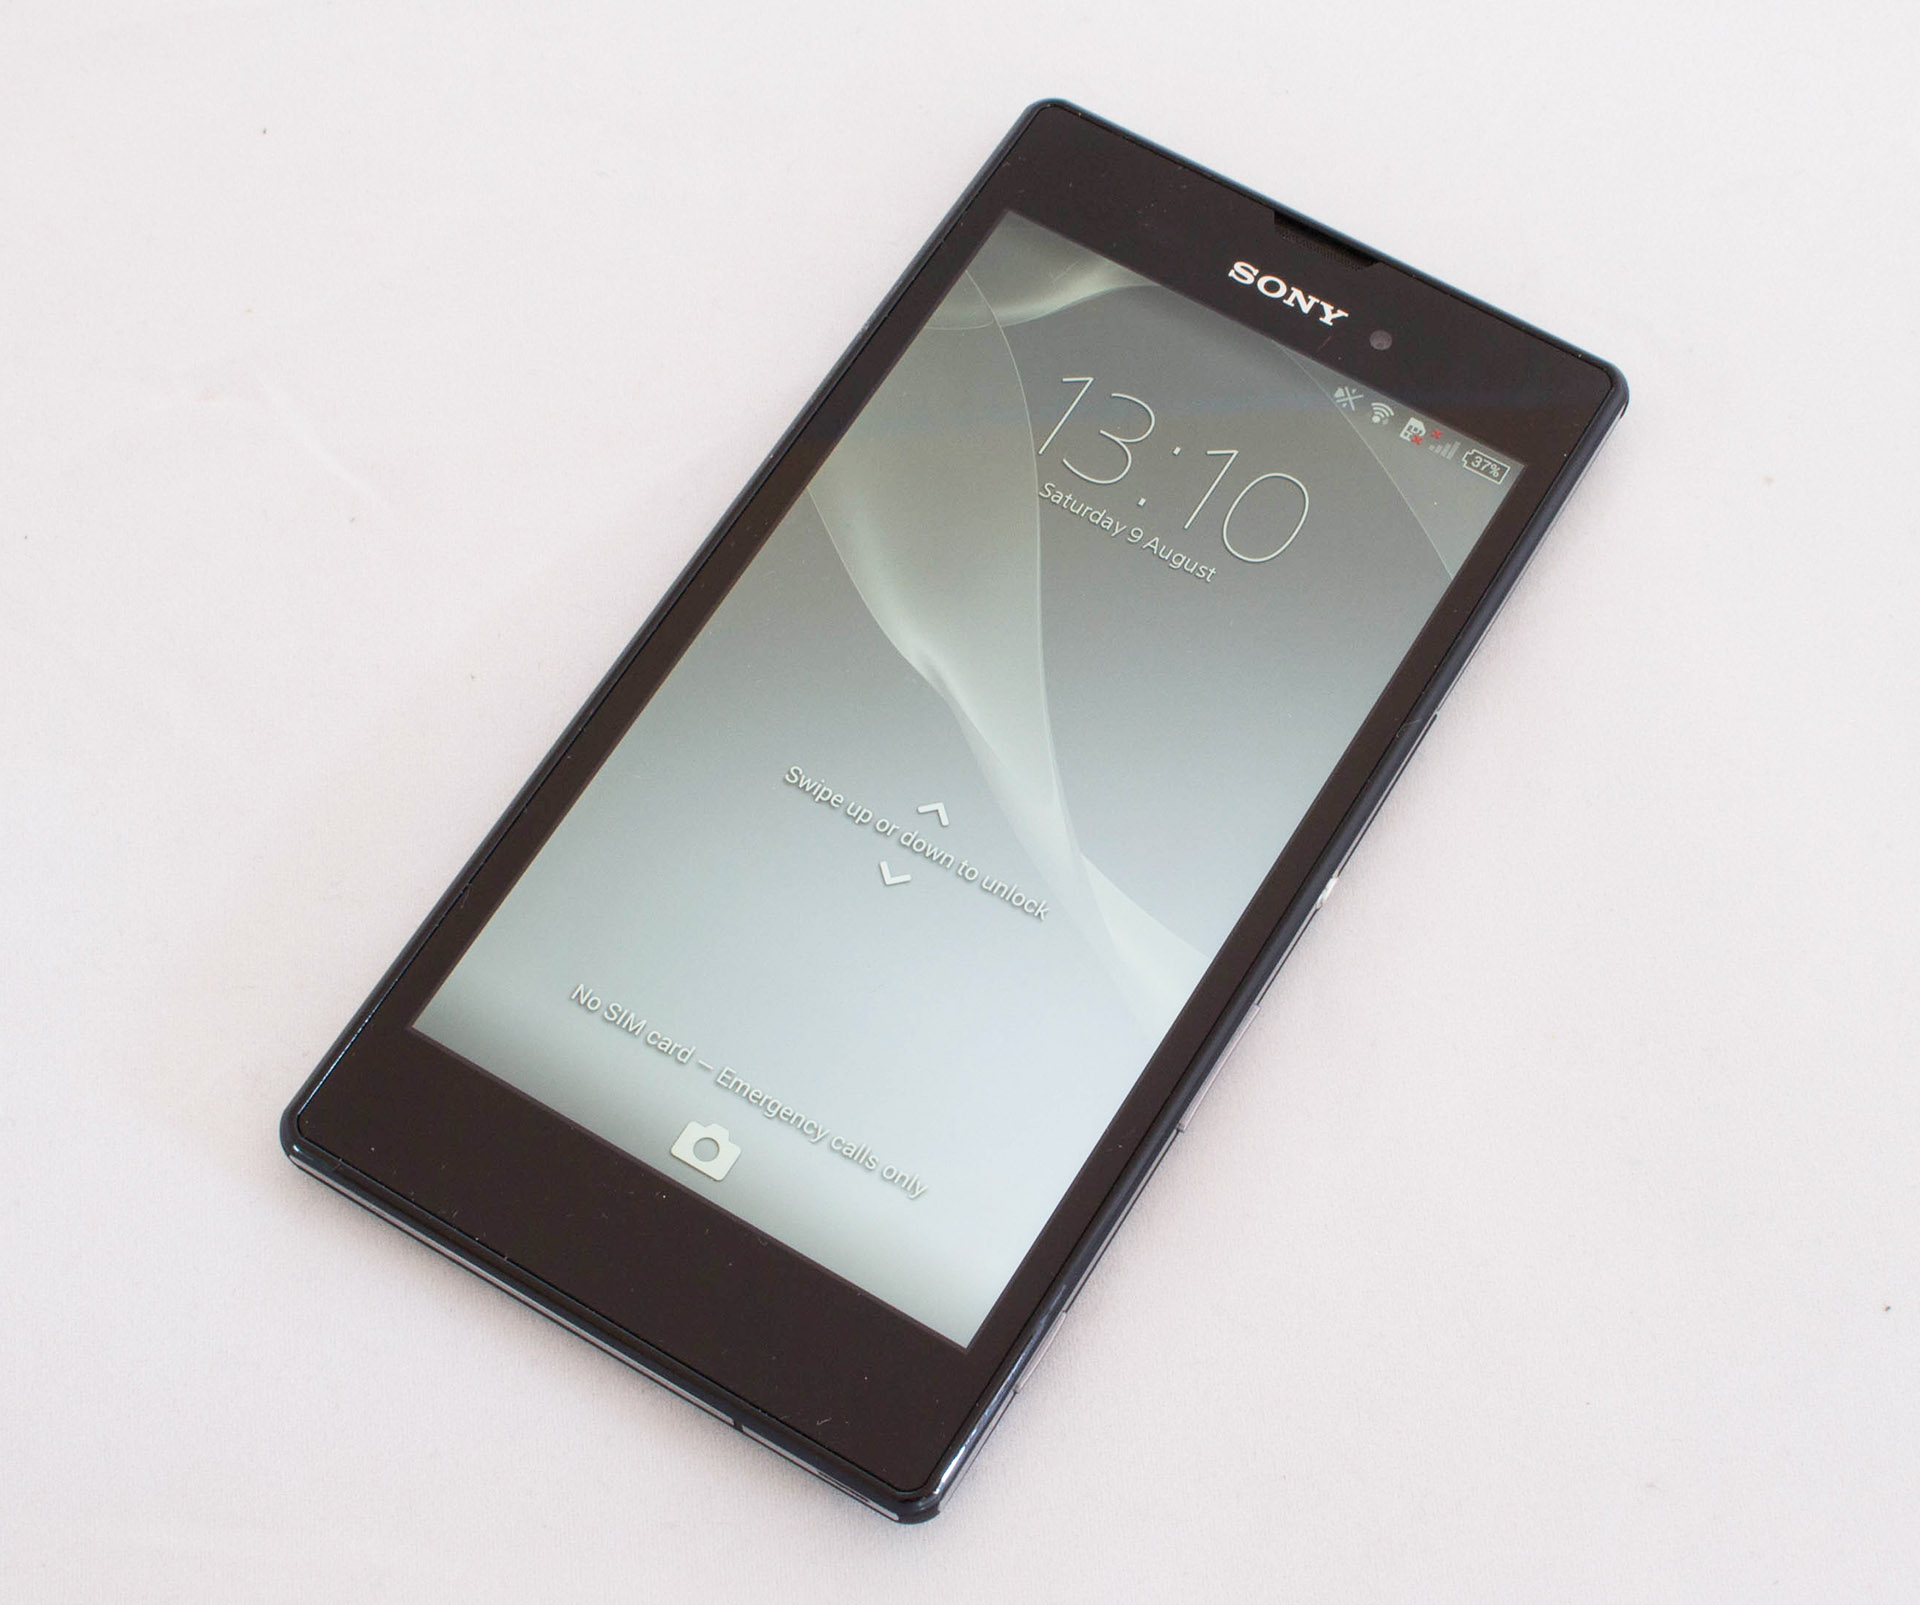 Sony Xperia T3 test